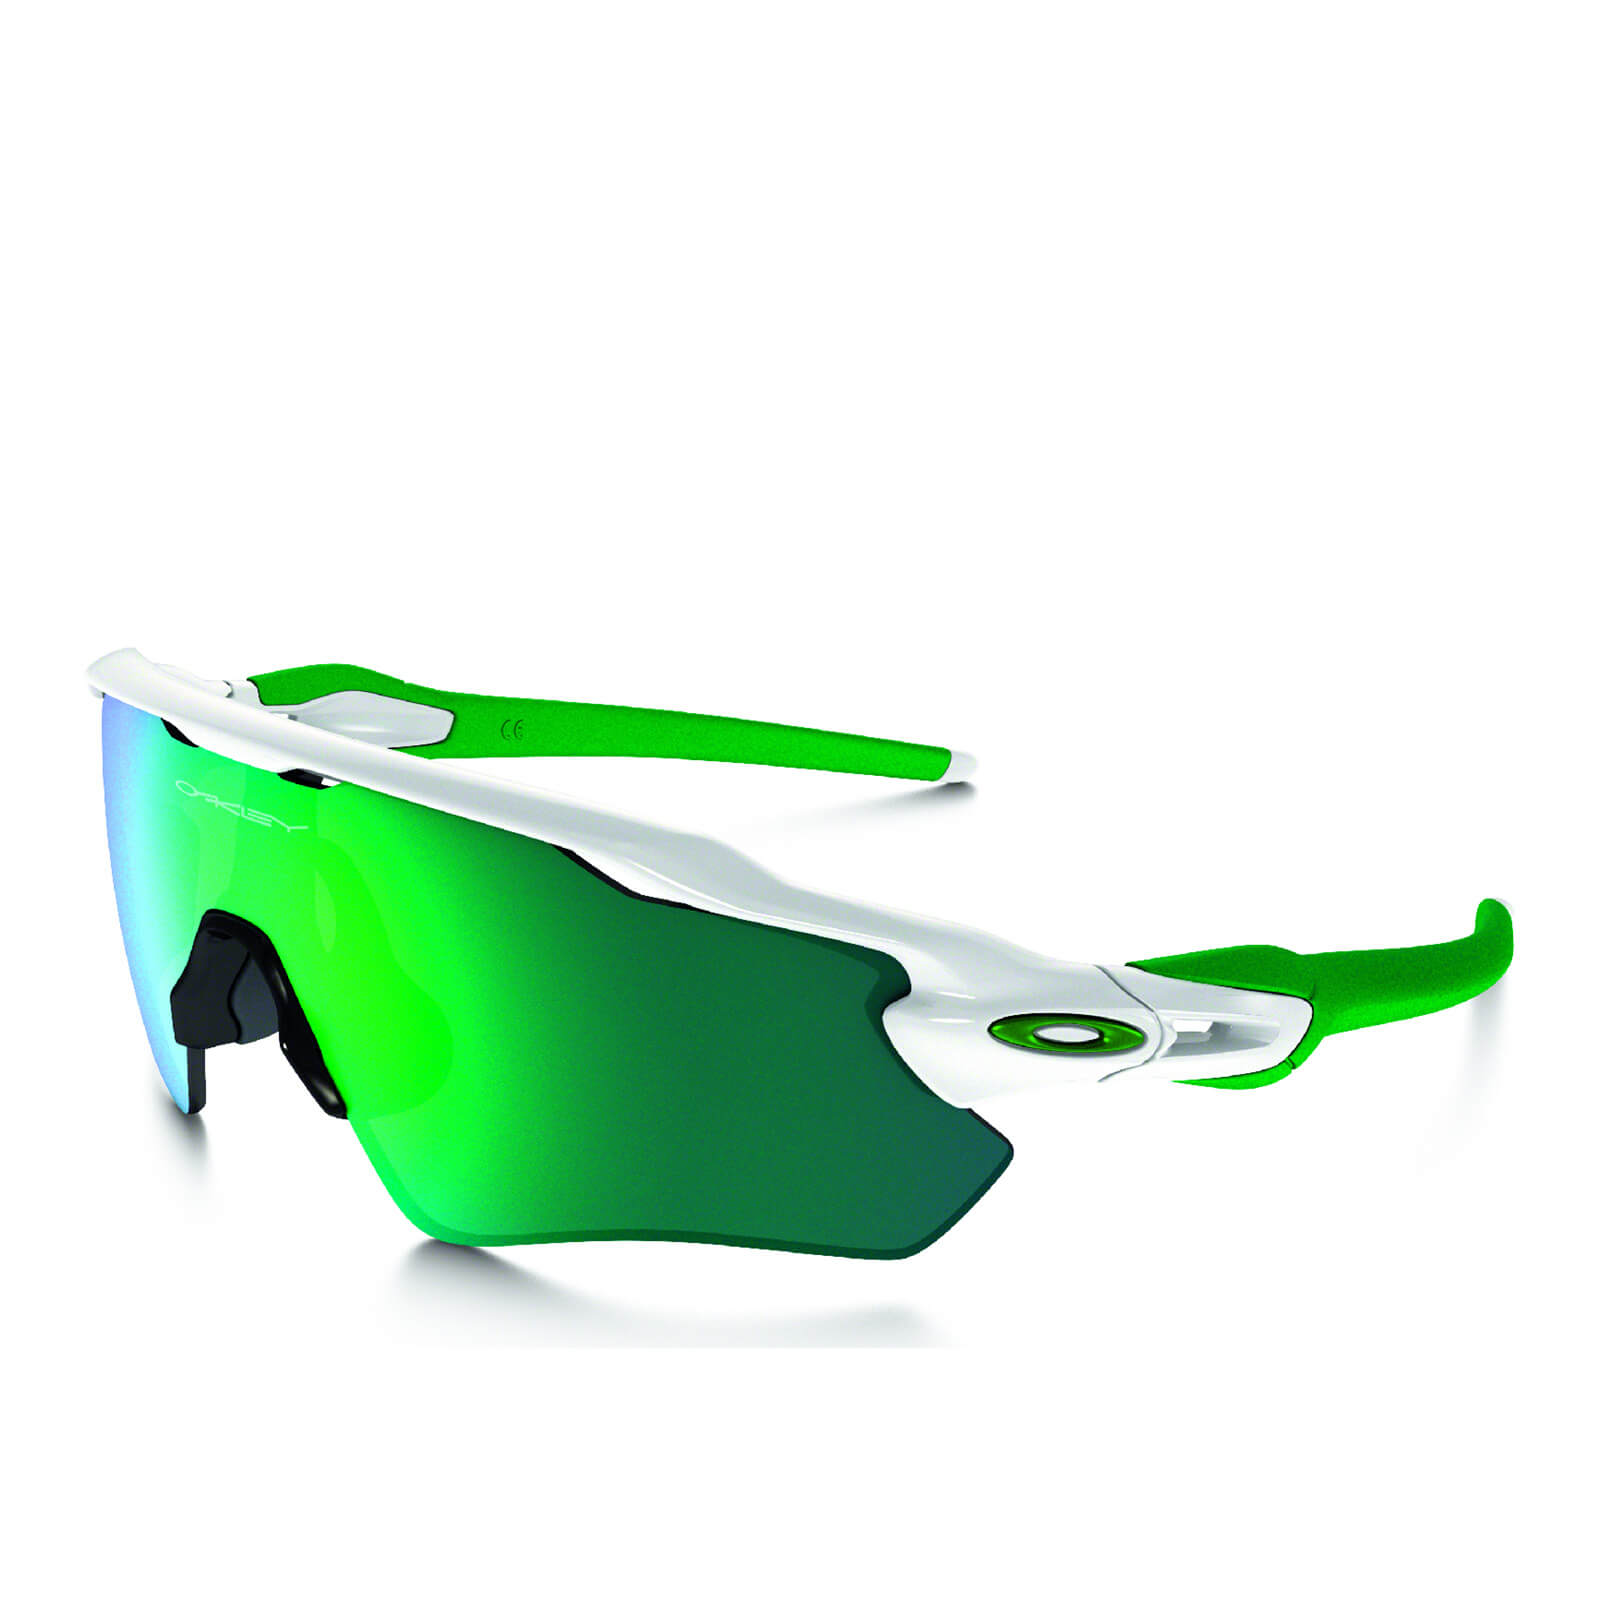 Oakley Radar EV Path Sunglasses - Polished White/Jade Iridium